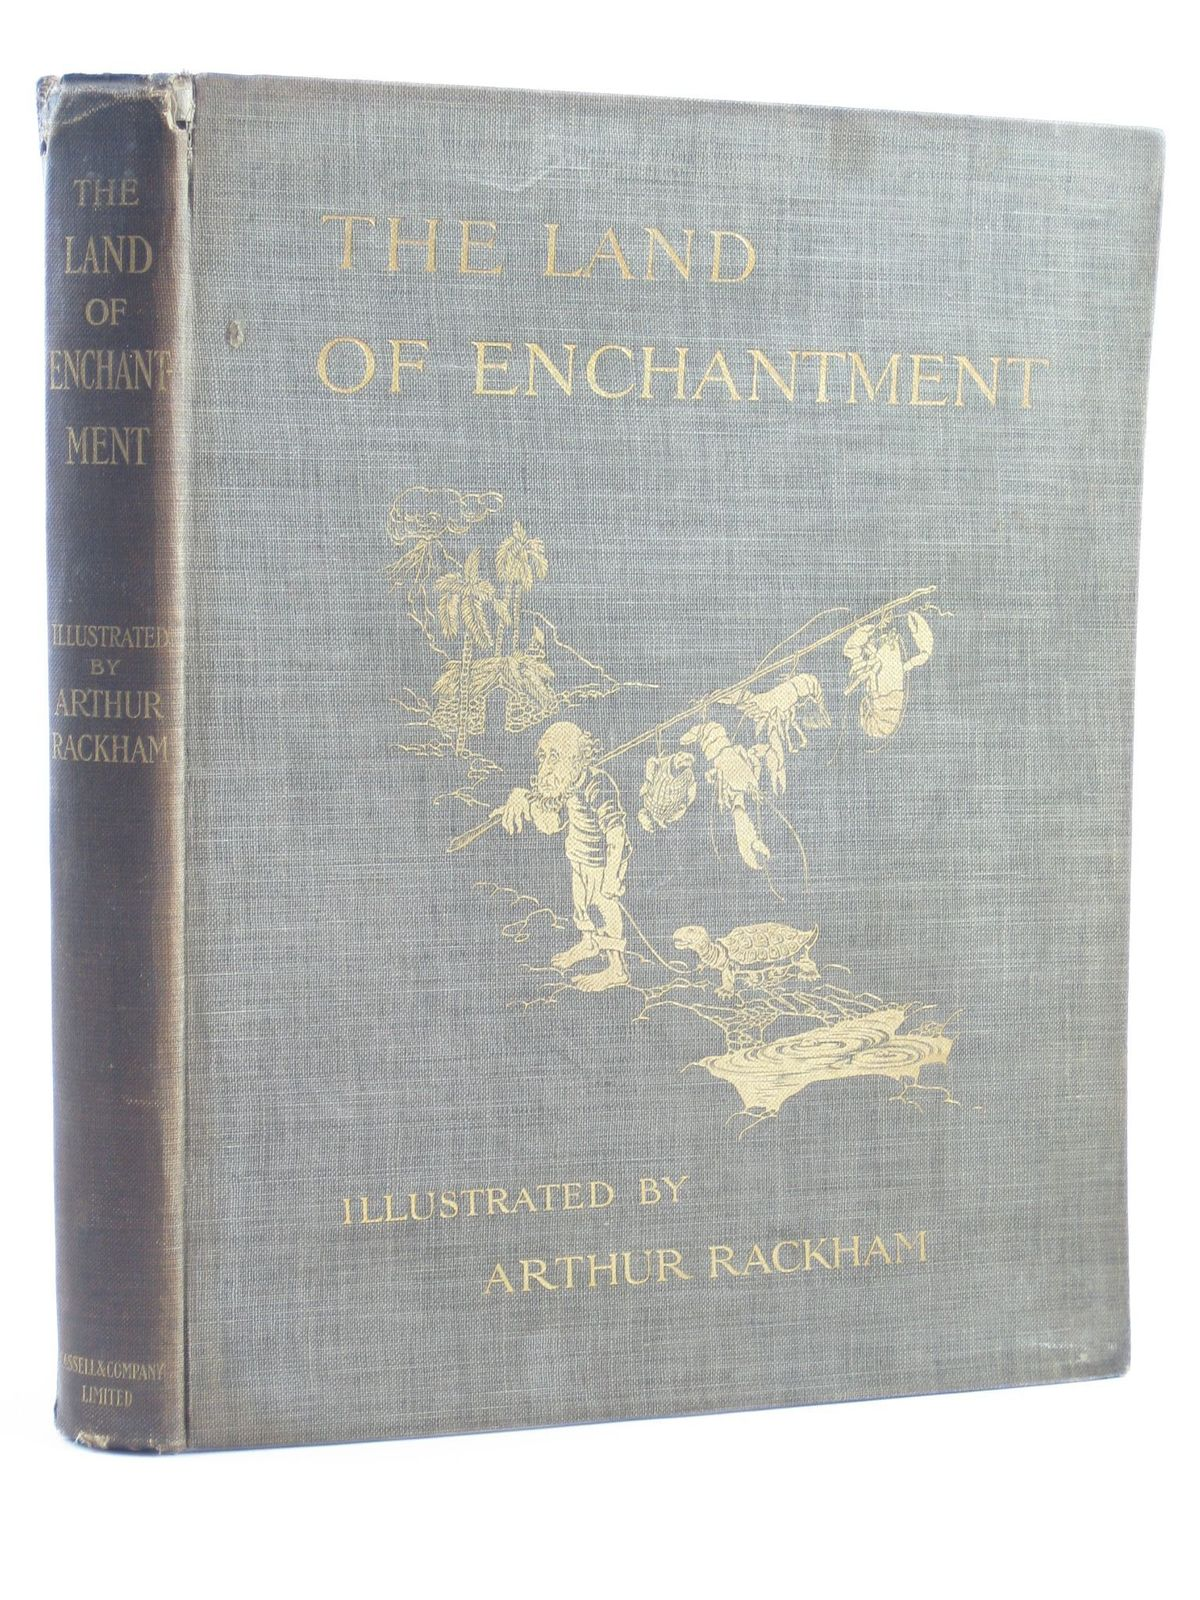 Photo of THE LAND OF ENCHANTMENT written by Bonser, A.E. Woolf, Sidney Bucheim, E.S. illustrated by Rackham, Arthur published by Cassell & Co. Ltd. (STOCK CODE: 1311334)  for sale by Stella & Rose's Books